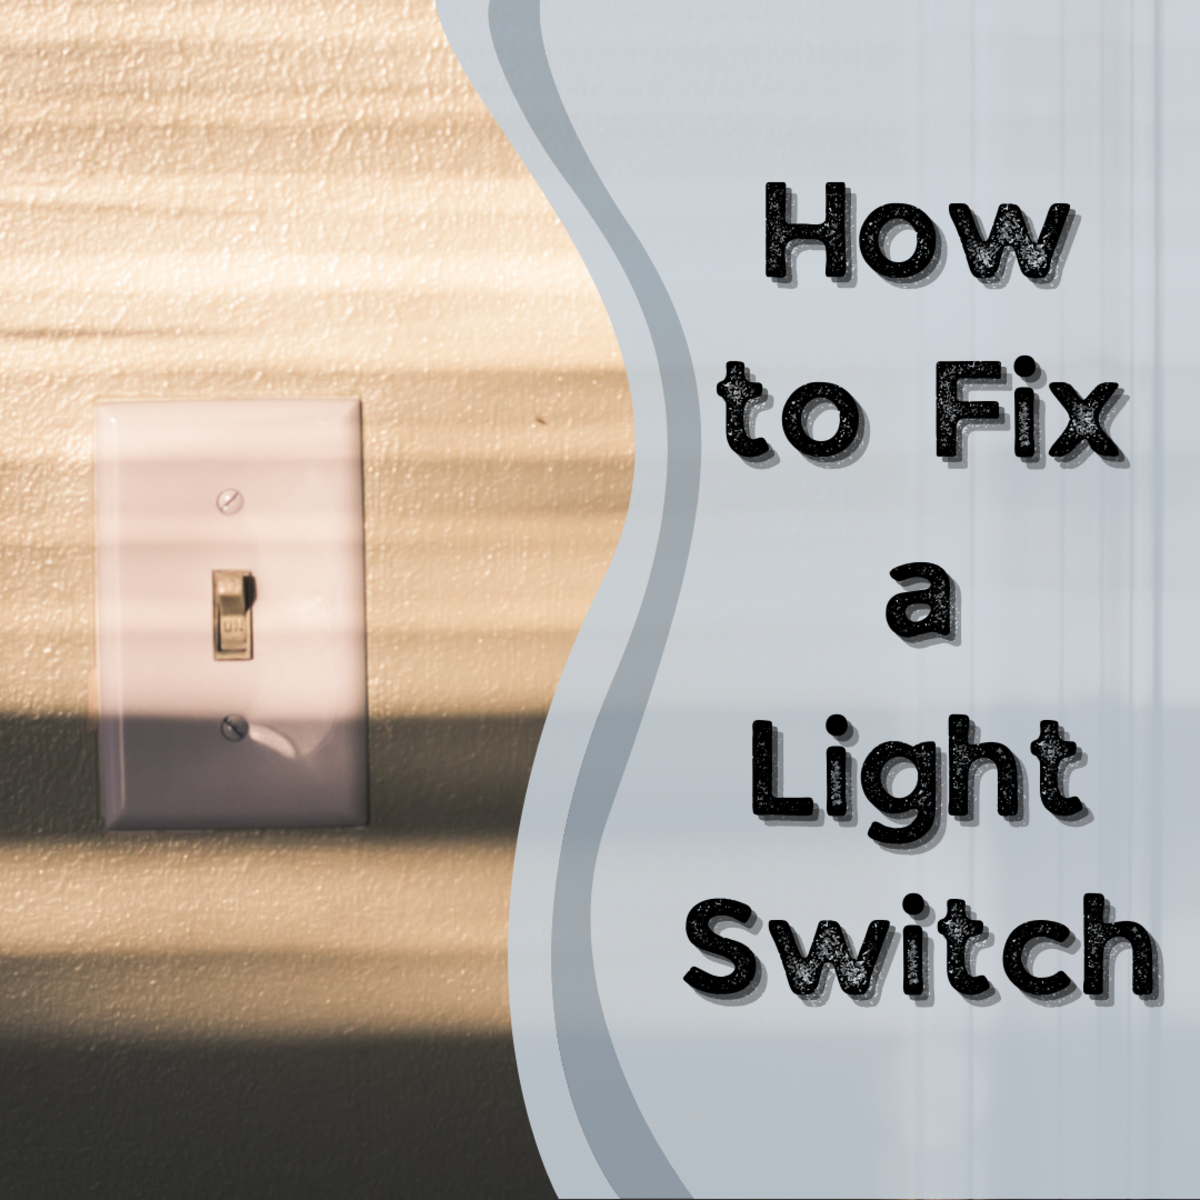 This article will guide you step-by-step through the process of fixing or replacing different light switches